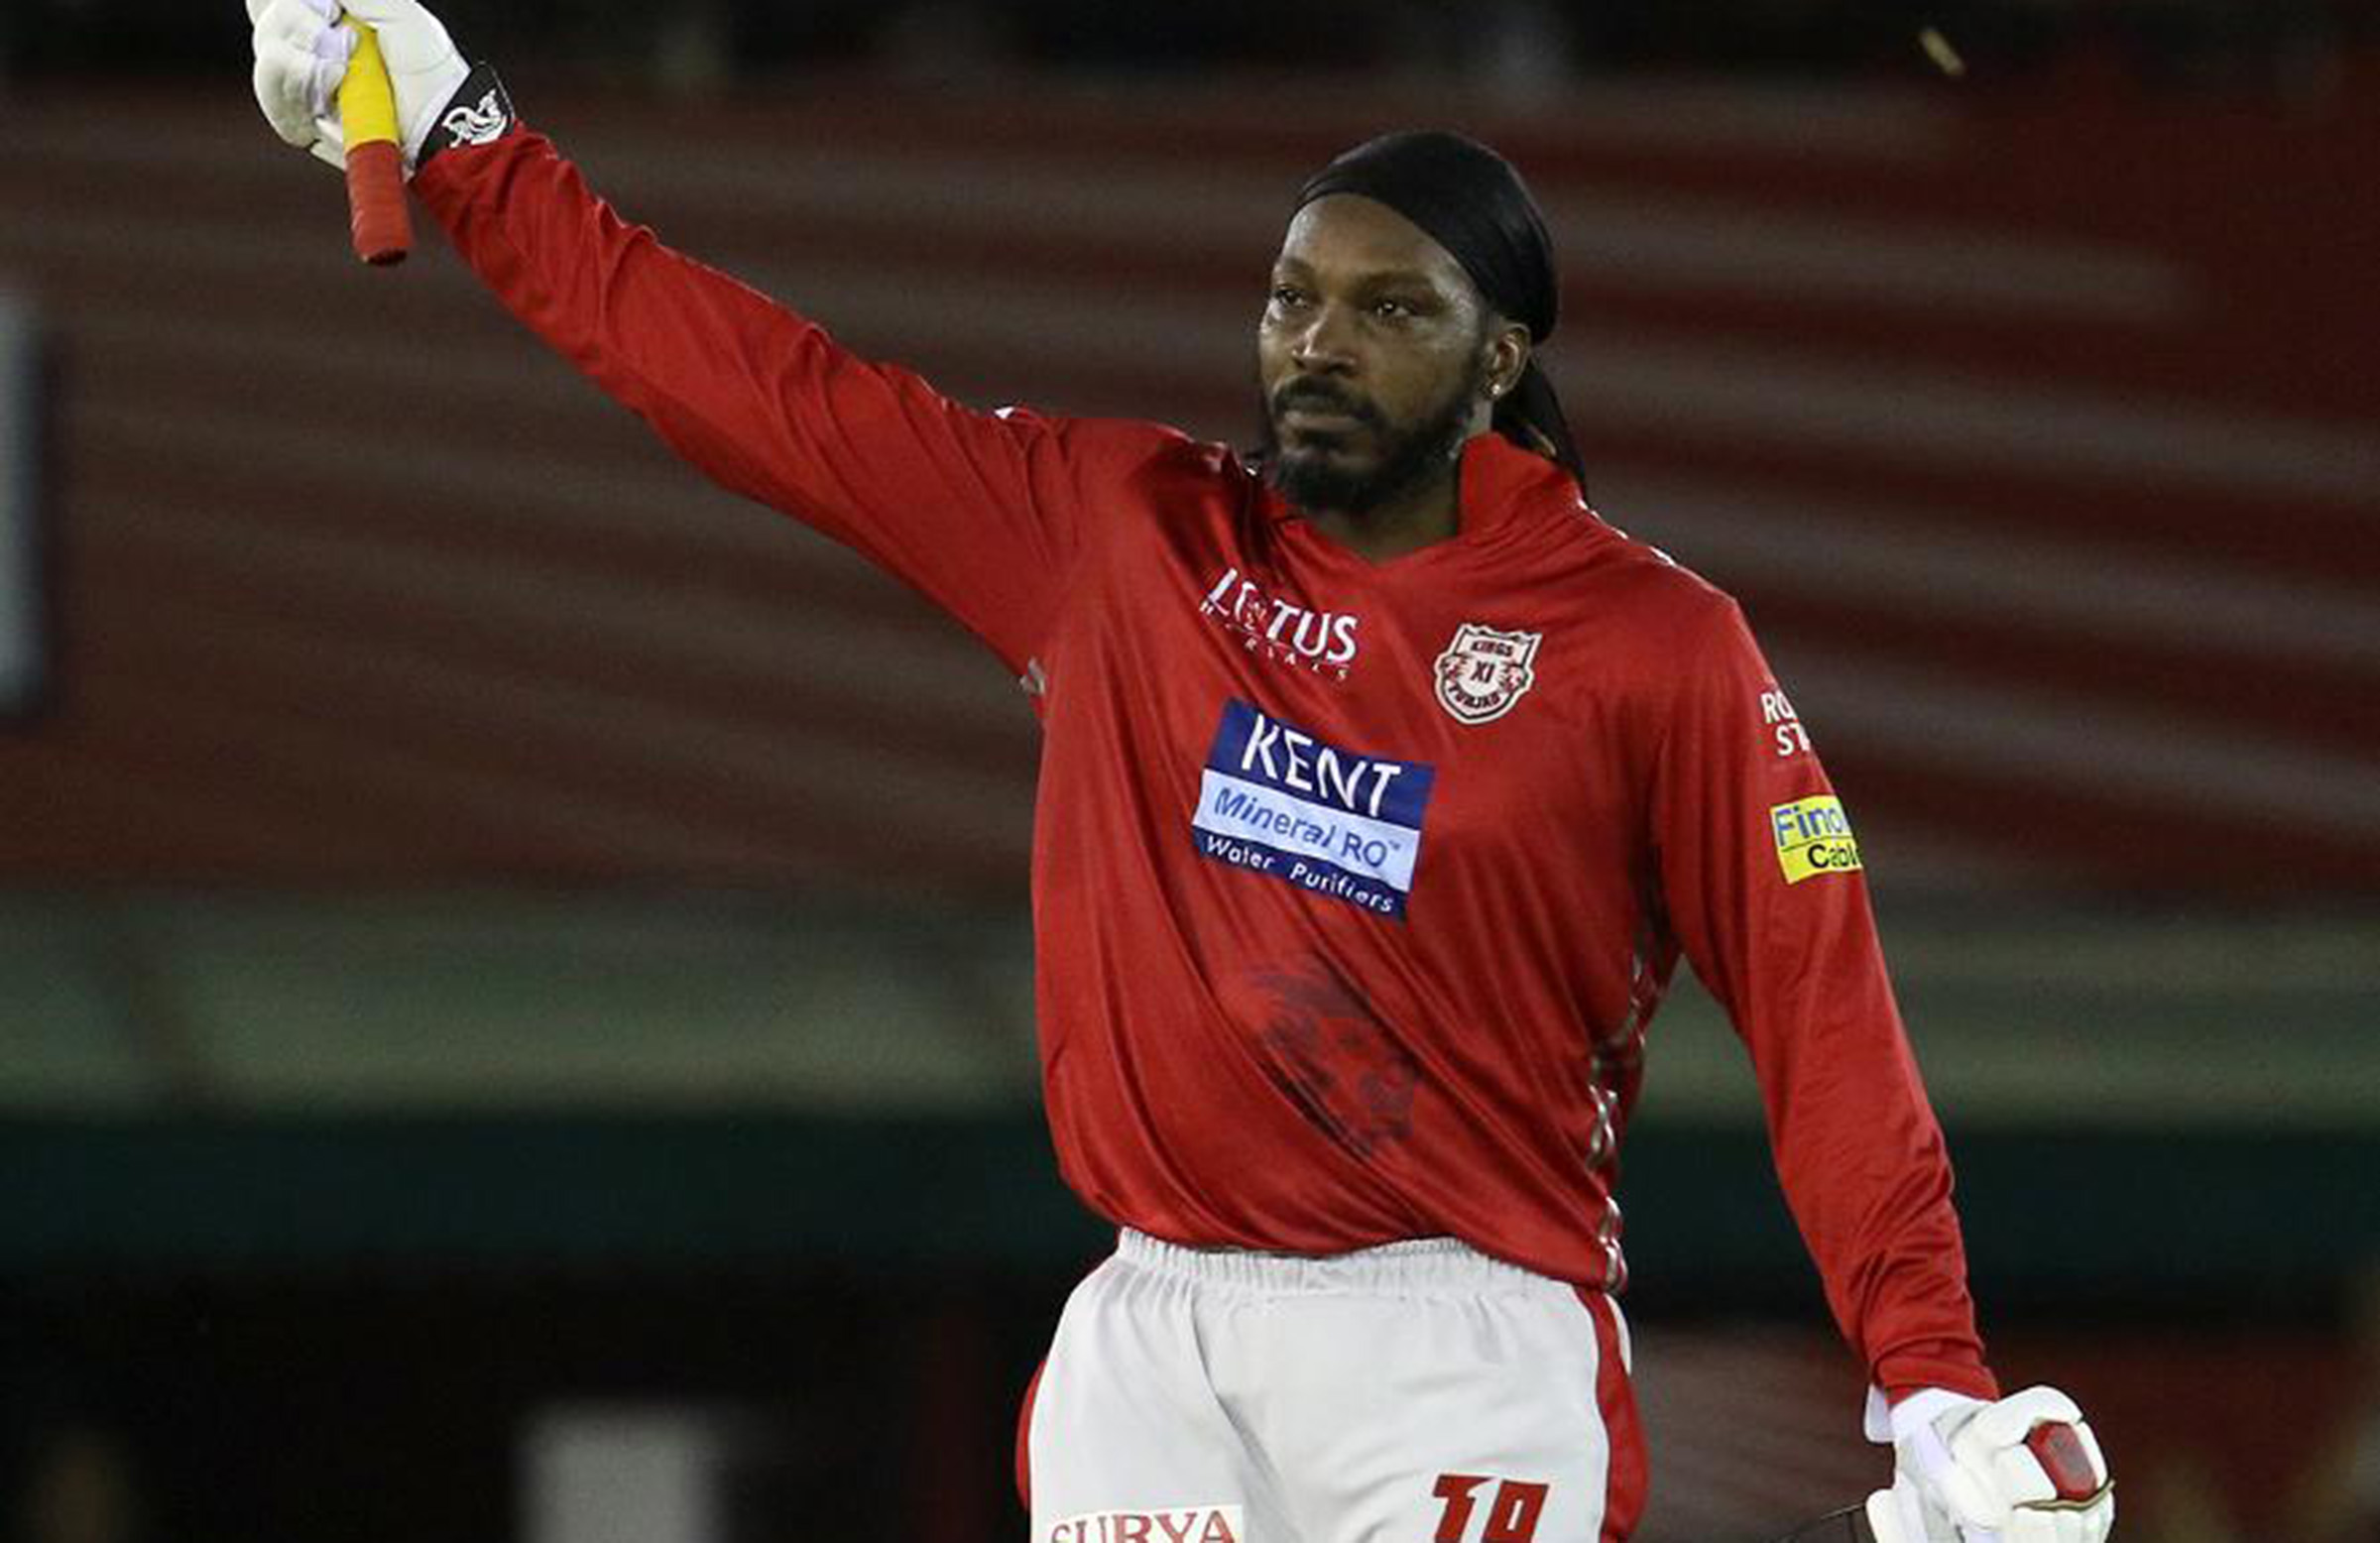 New highs and lows as strong Gayle hits